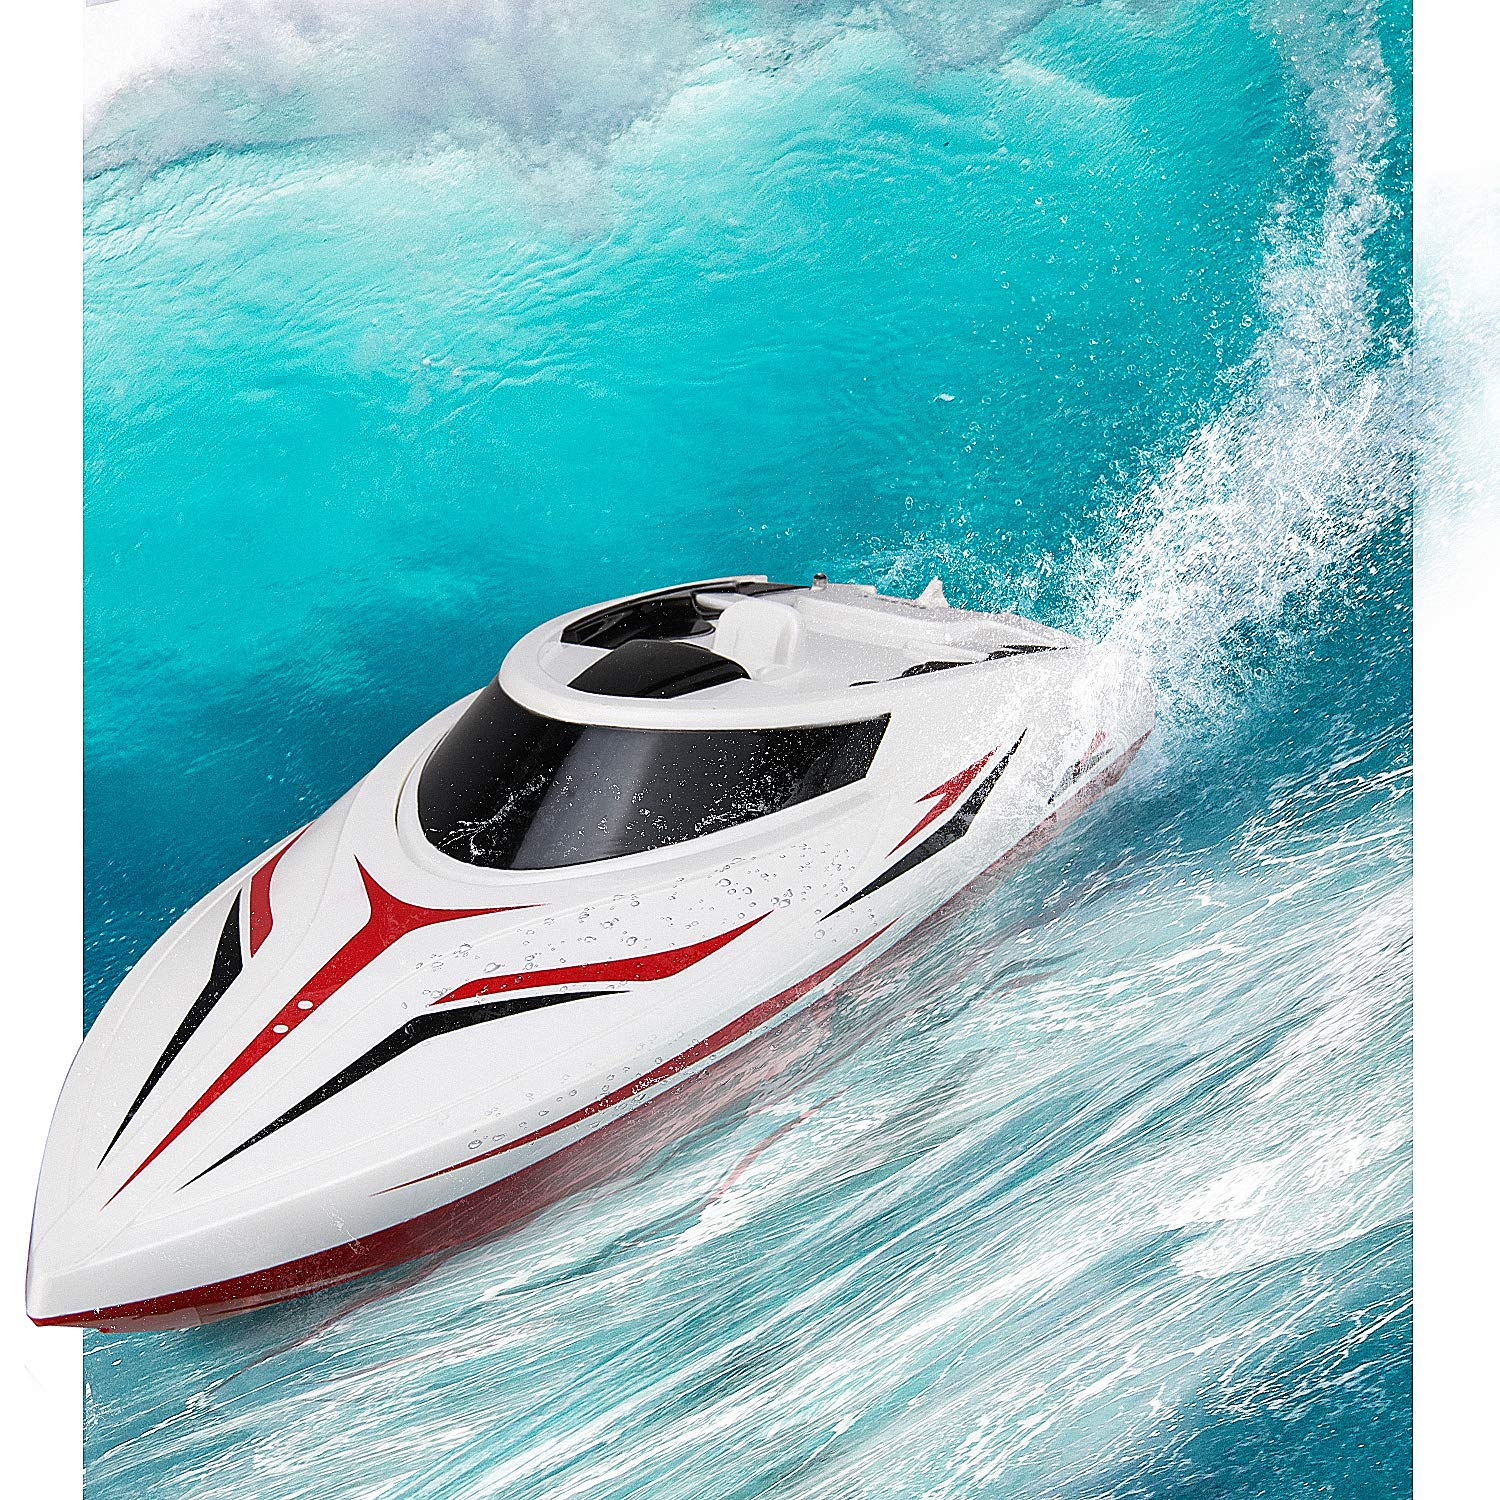 INTEY RC Racing Boats (25miles+) 17 Inches Large Double Waterproof Remote Control Speed Boat with Fine Tuning Capsize Recovery for Kids and Adults Contain 2 Batteries by INTEY